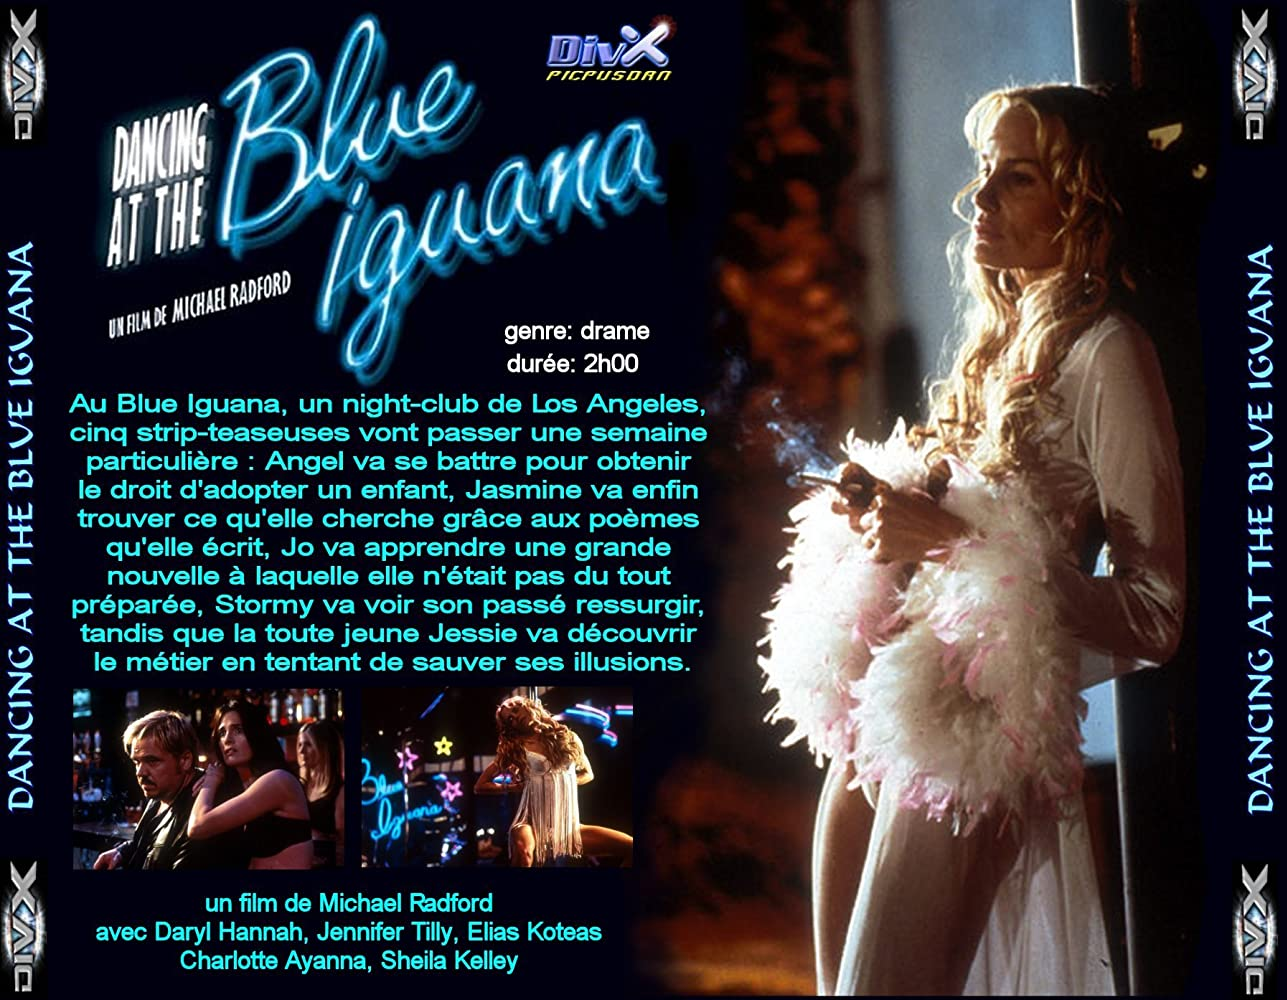 Daryl hannah dancing at the blue iguana